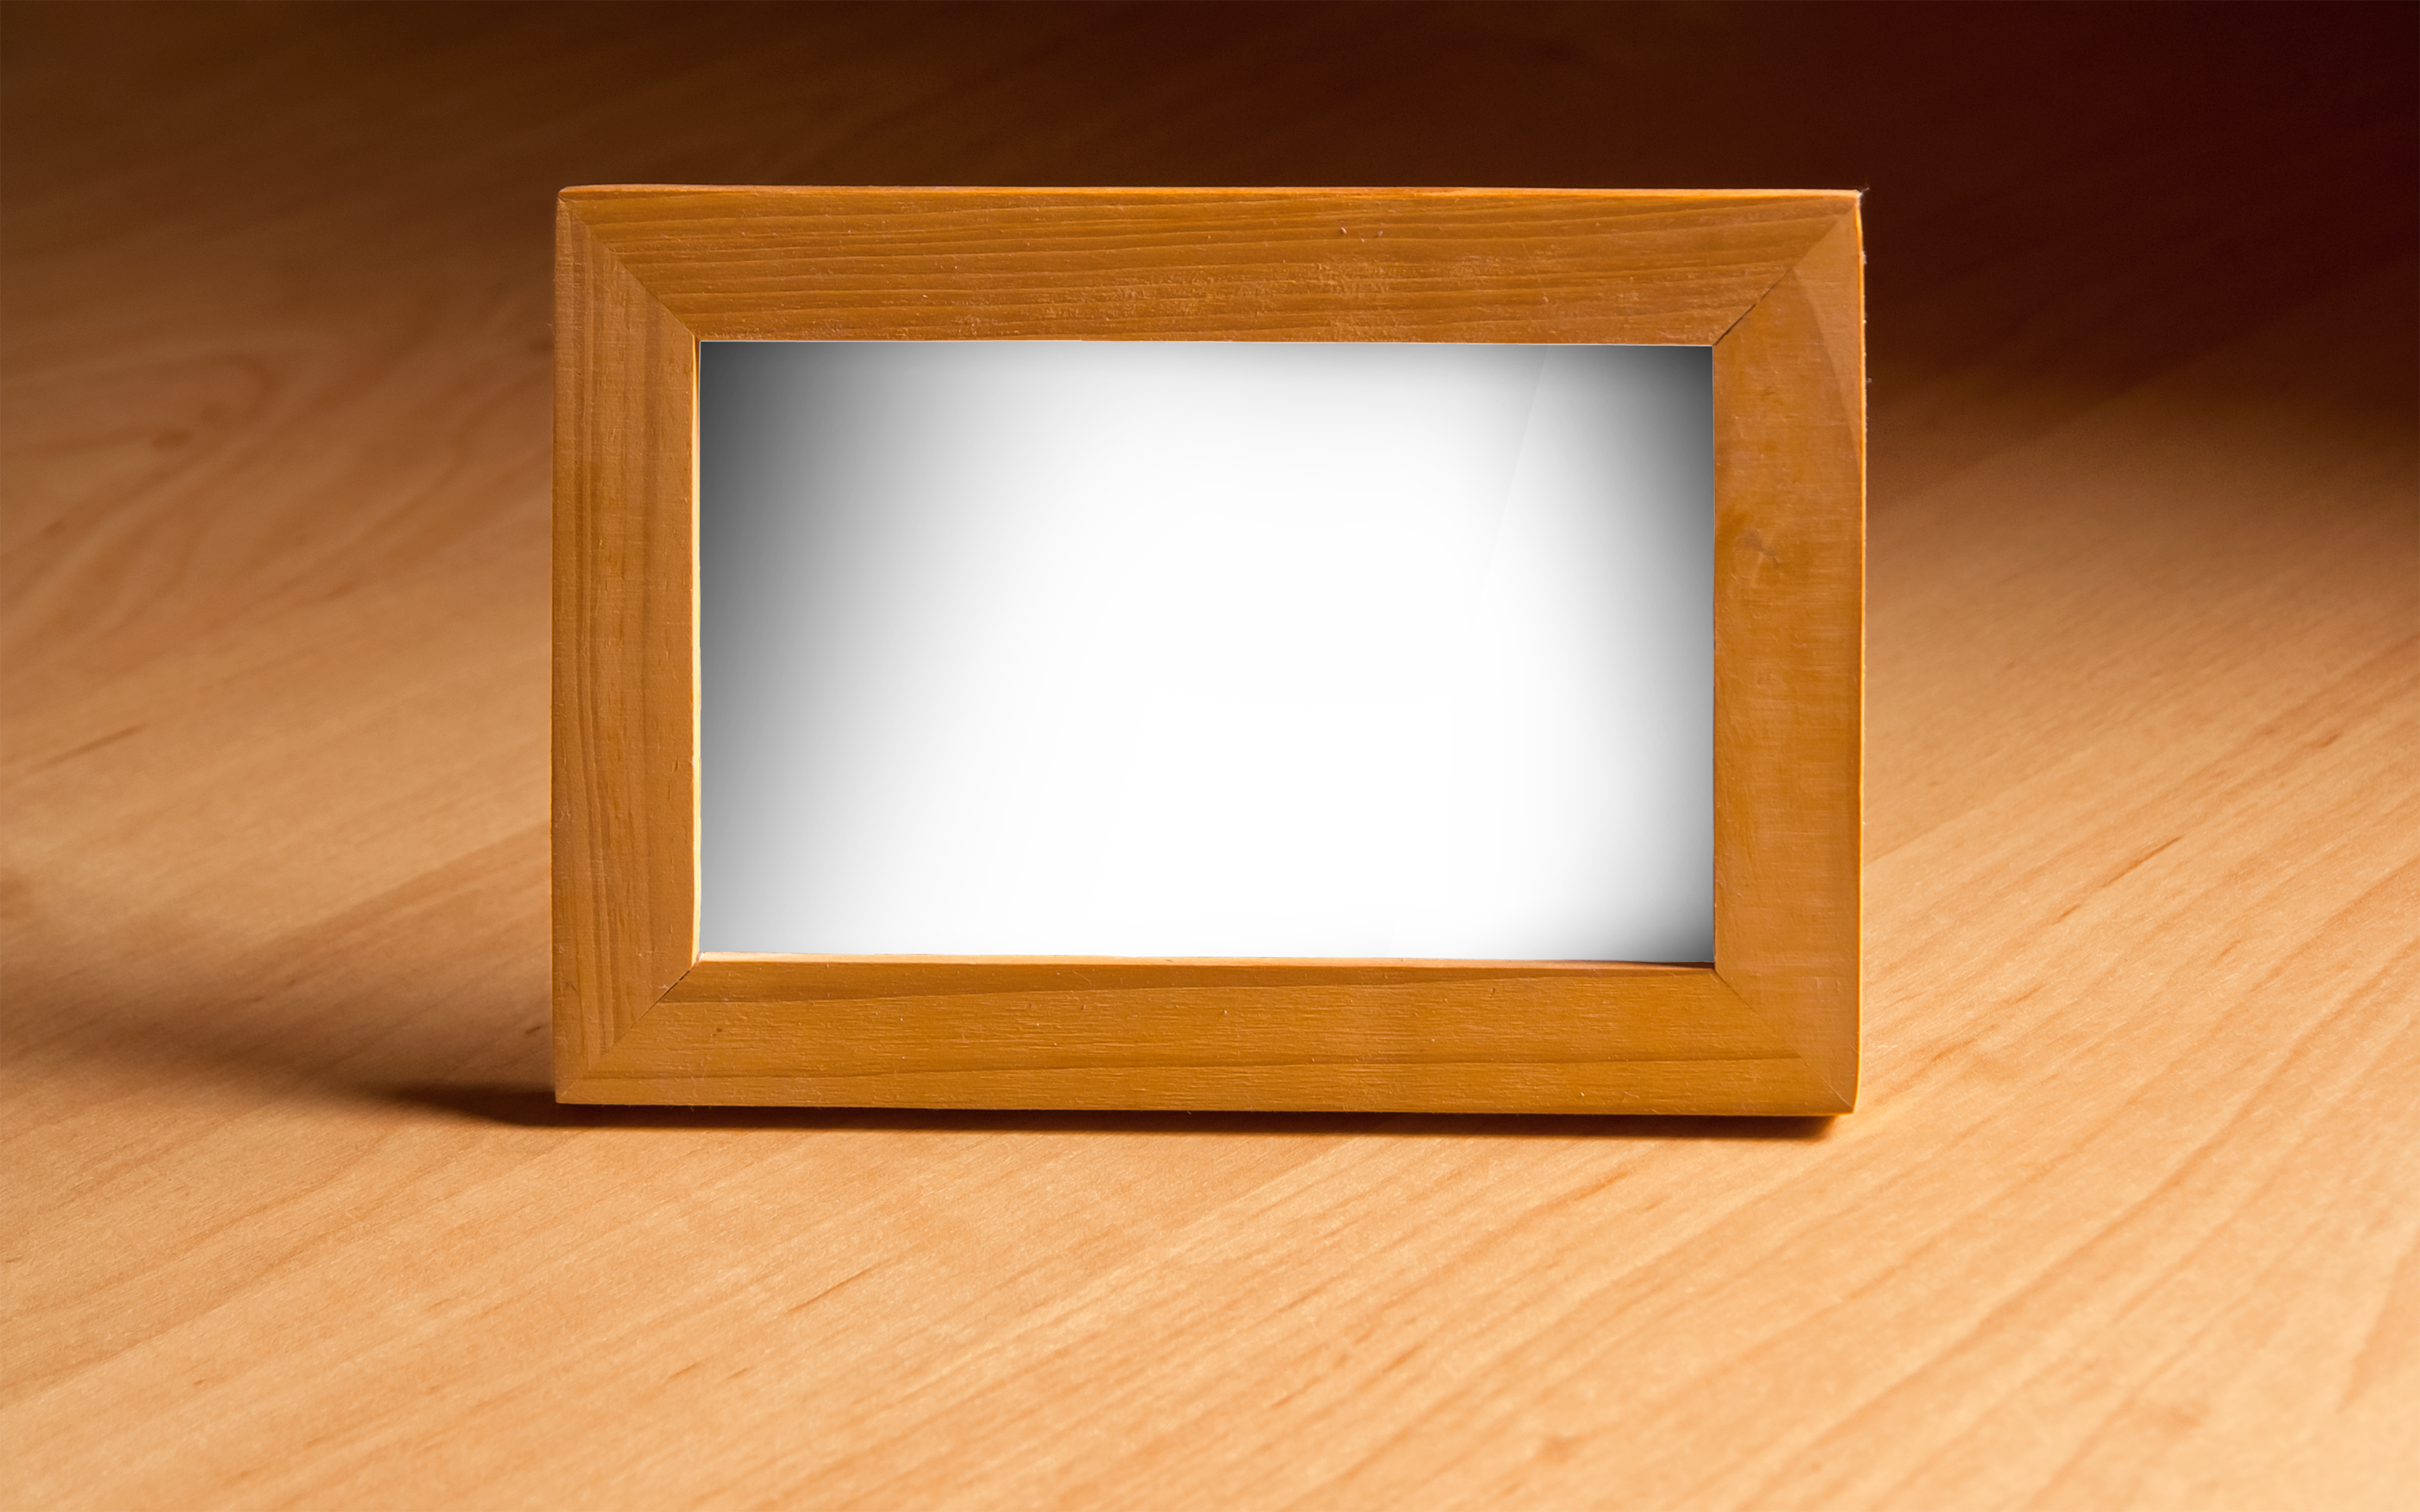 wooden-photo-frame-on-the-table